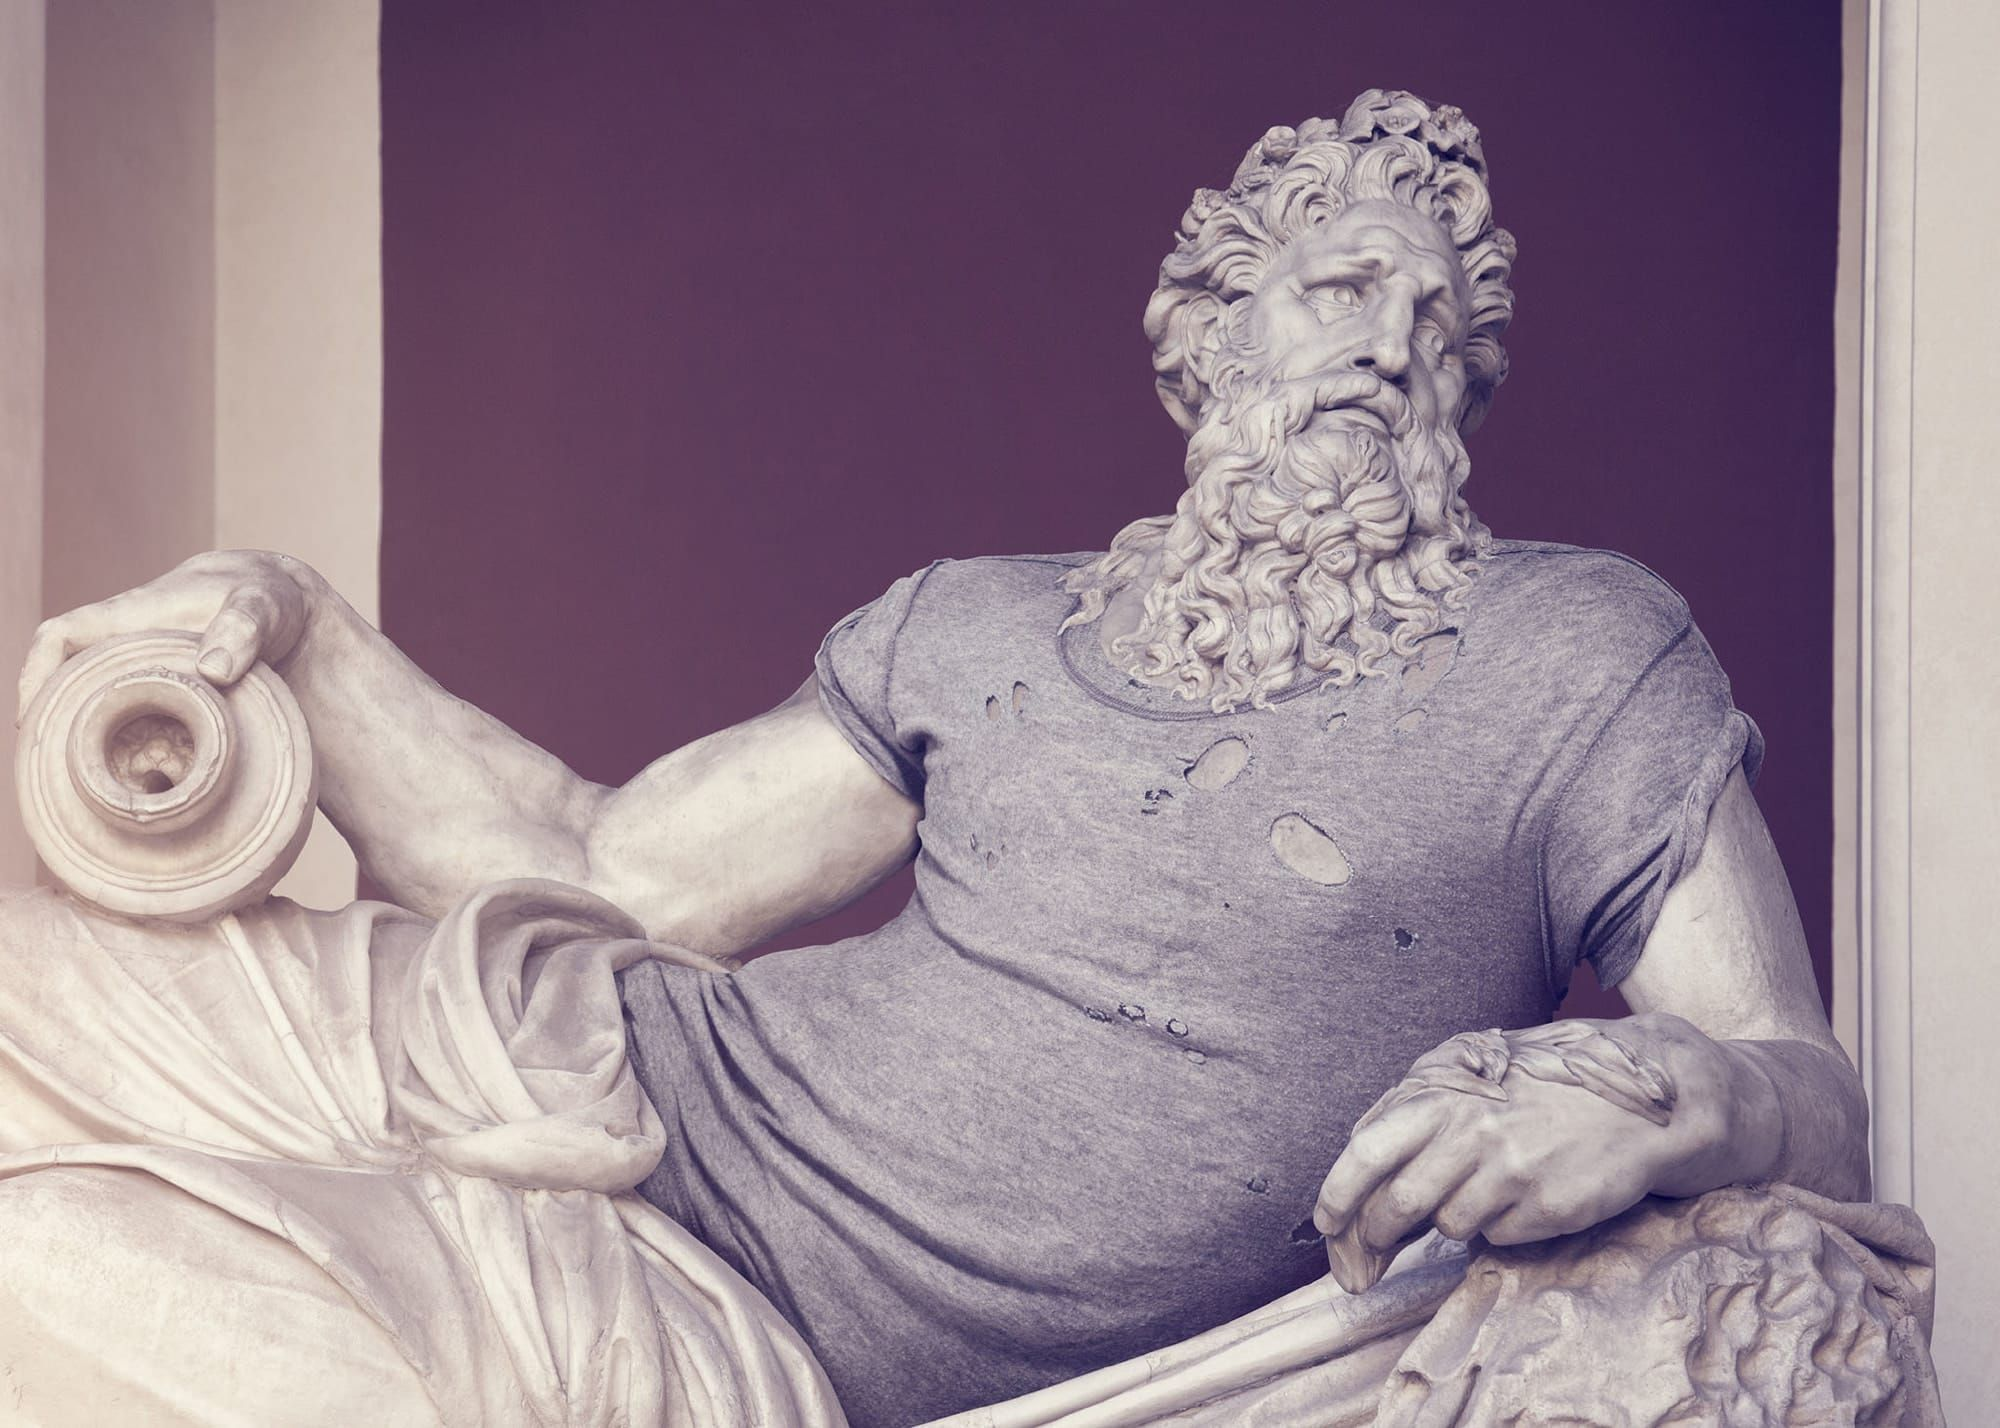 Someone Dressed These Ancient Greek Sculptures To Look Like